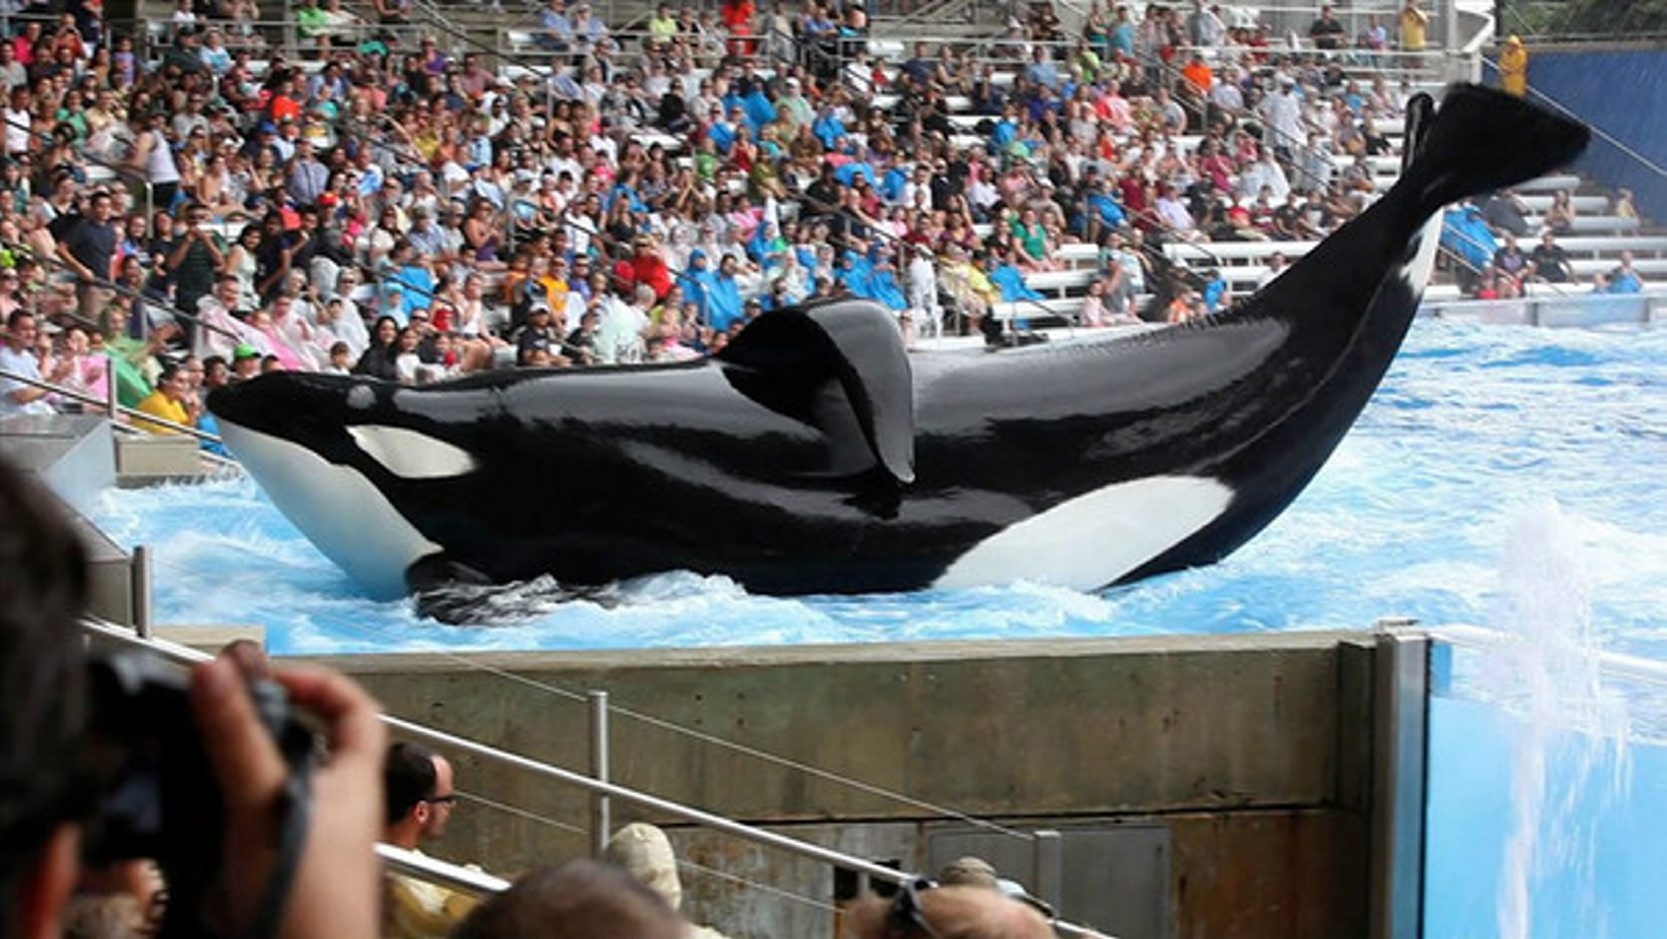 A still from the documentary 'Blackfish' shows SeaWorld star Tilikum, who still performs there.